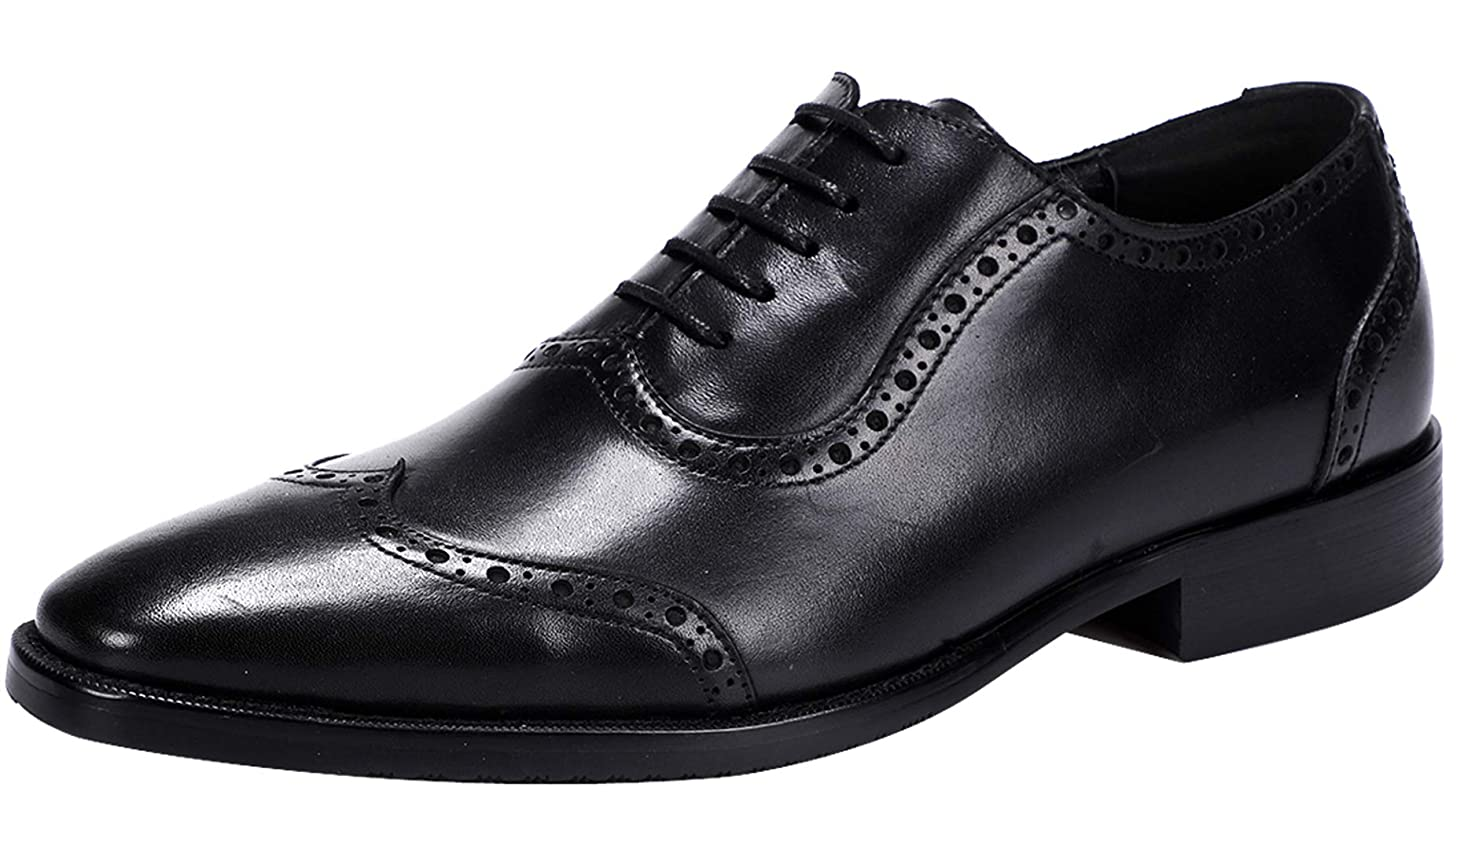 Men's Oxford Classic Wingtip Lace-up Formal Leather Dress Shoes